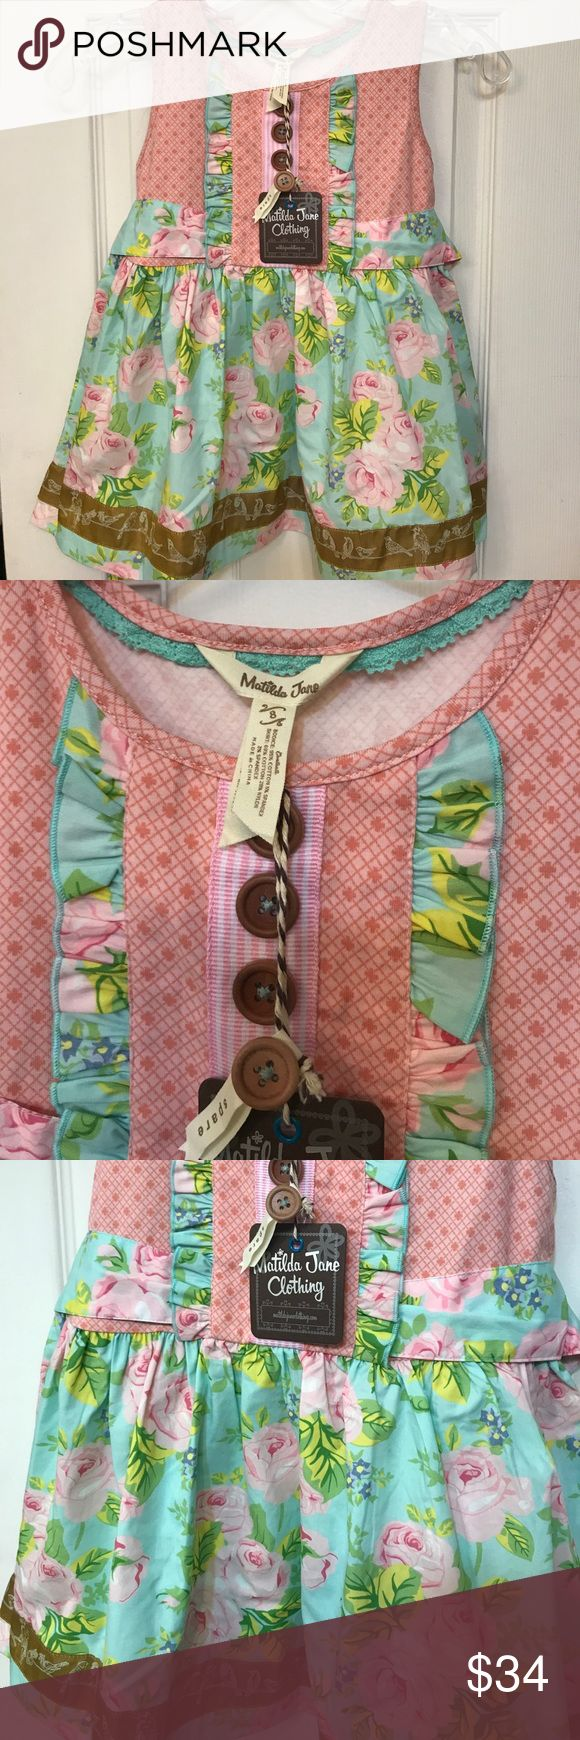 Matilda Jane Vault oh so lovely Shasta Top Girls size 8 Matilda Jane oh so lovely Shasta top. Part of the vault release, summer 2016.  New with tags Matilda Jane Shirts & Tops